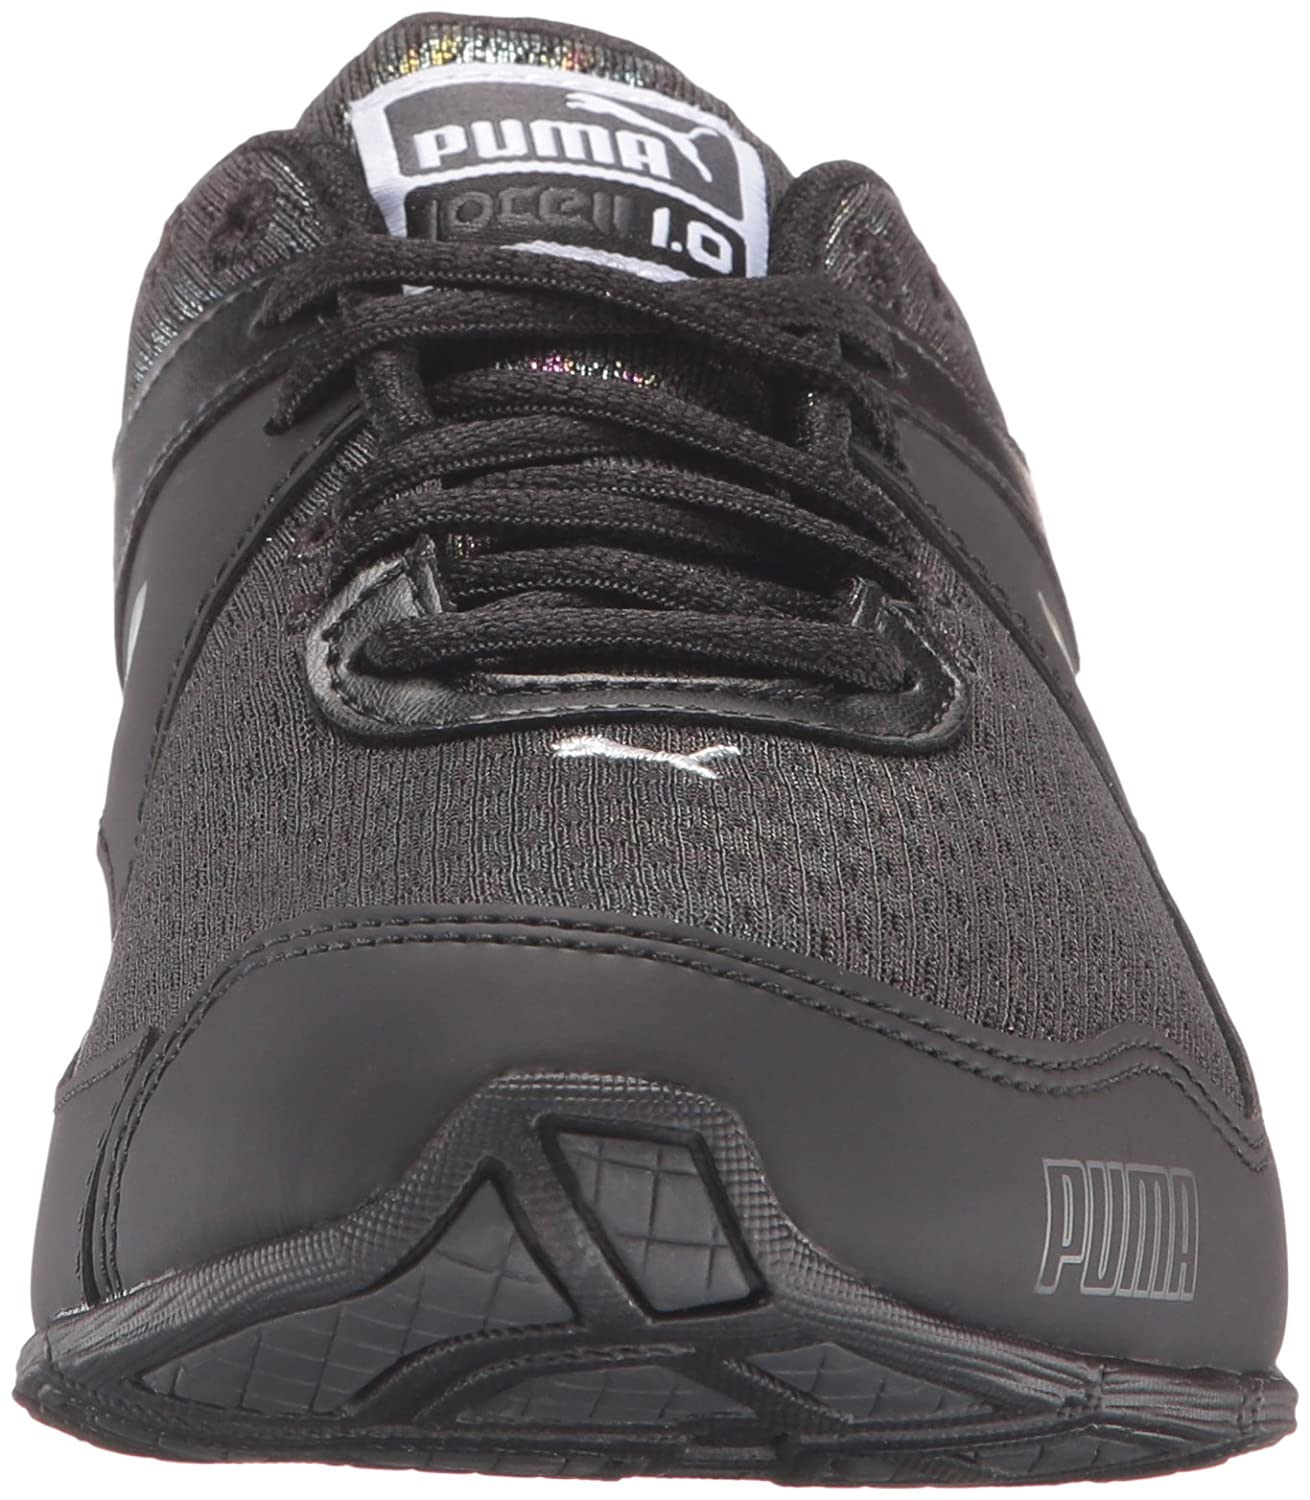 da76ba41f0c8 PUMA Women s Cell Riaze Prism WN s Cross-Trainer Shoe